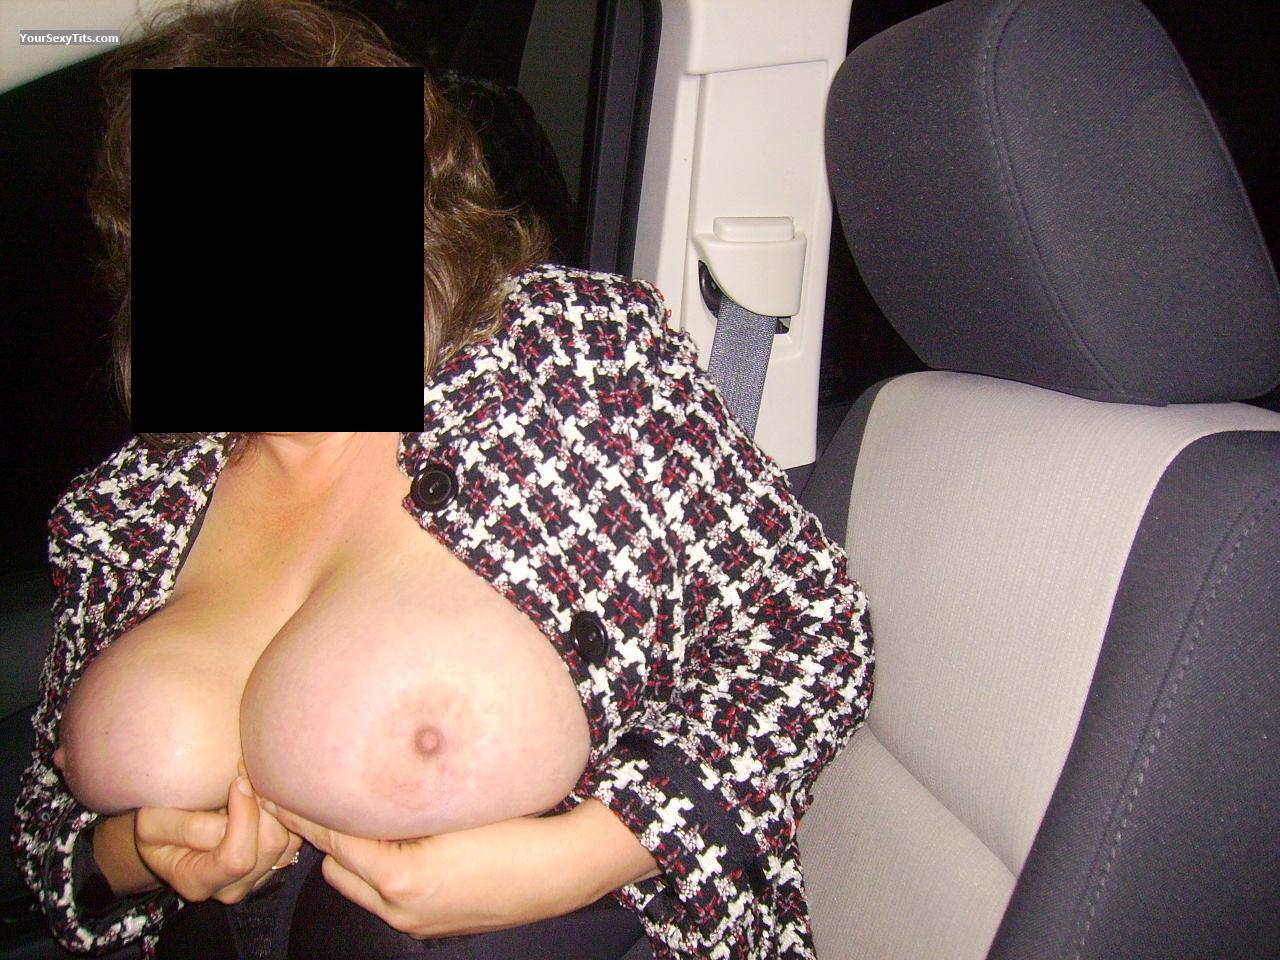 Tit Flash: Big Tits - Wifey from United States